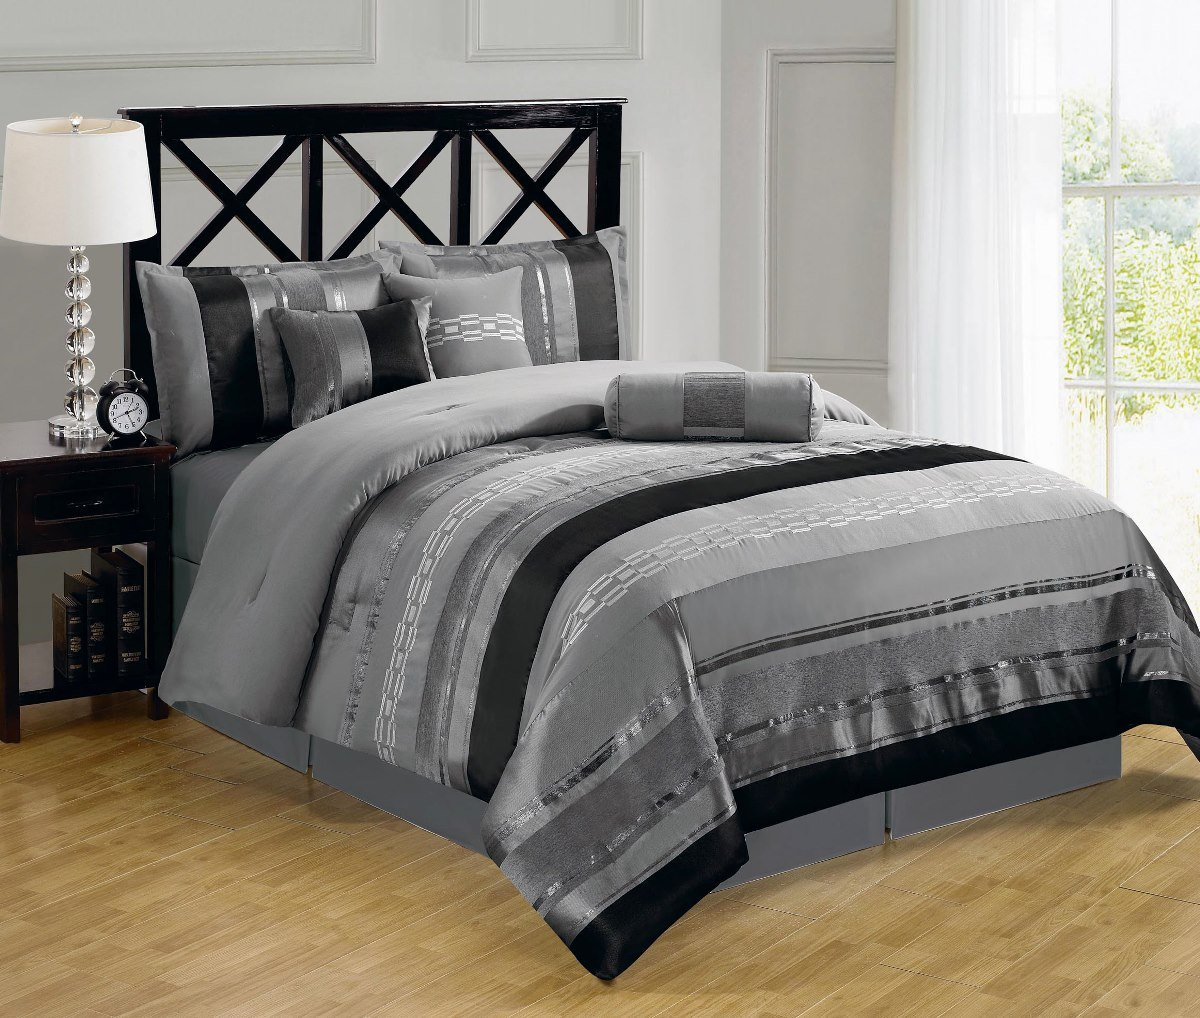 sheetsnthings Full size 11pc Claudia Gray set includes:7PC  Comforter set and 4PC Microfiber sheet set at Sears.com